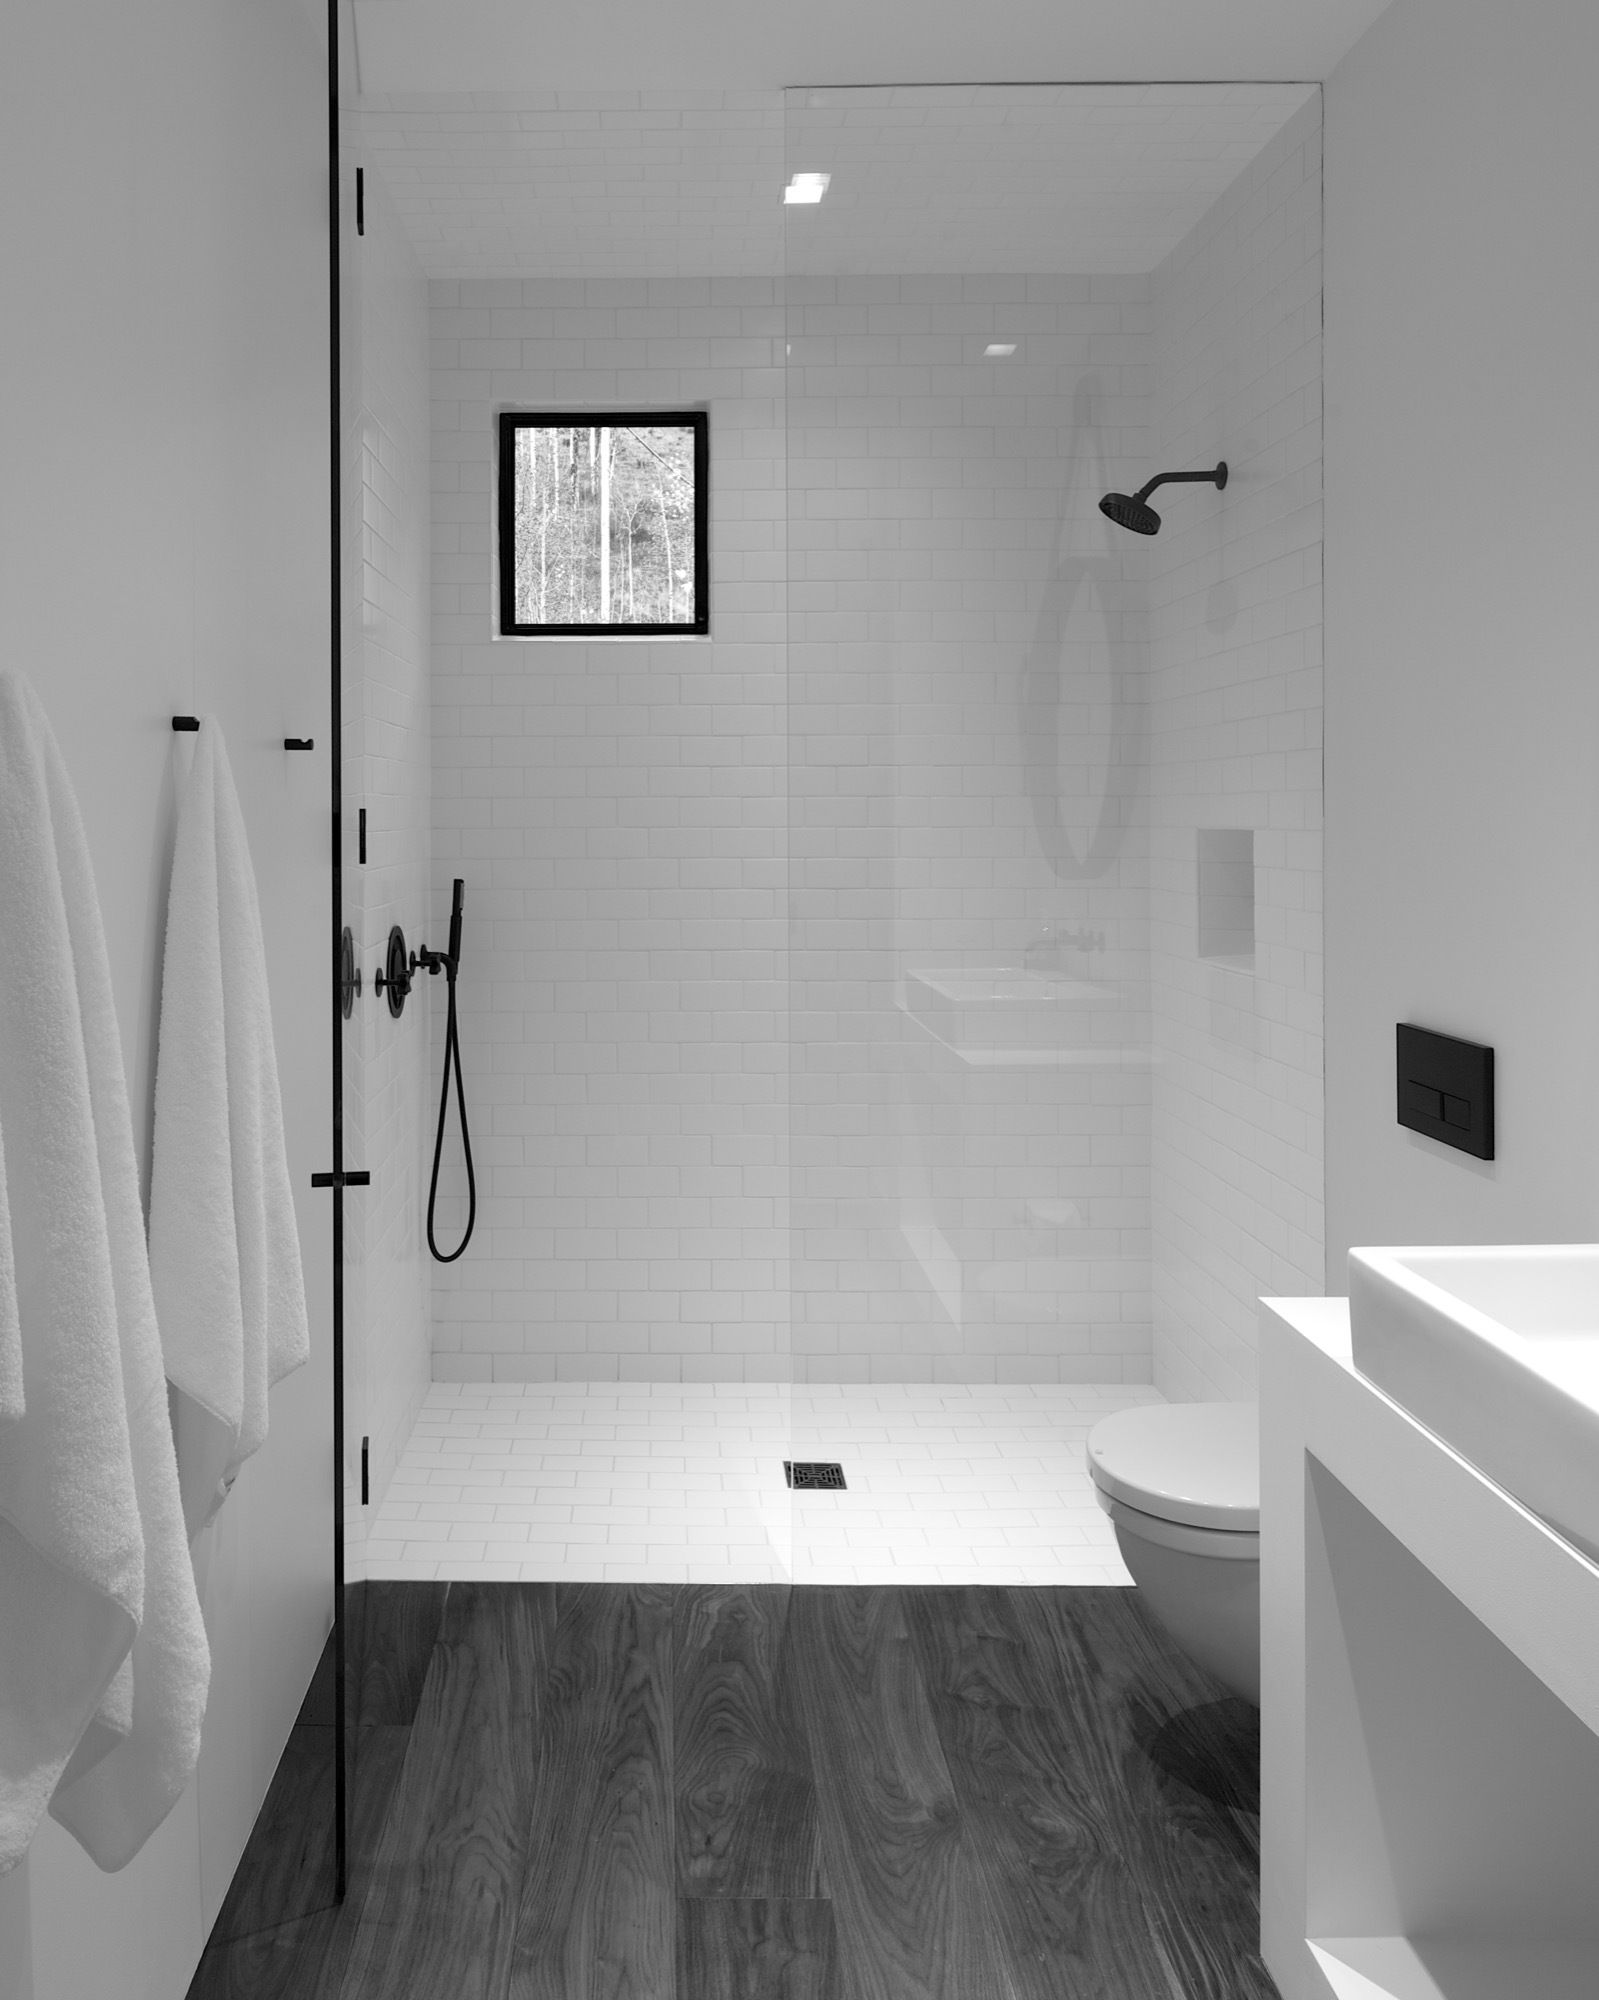 The Minimalistic Bathroom At Center Of Studio Separates Sleeping Area From Living